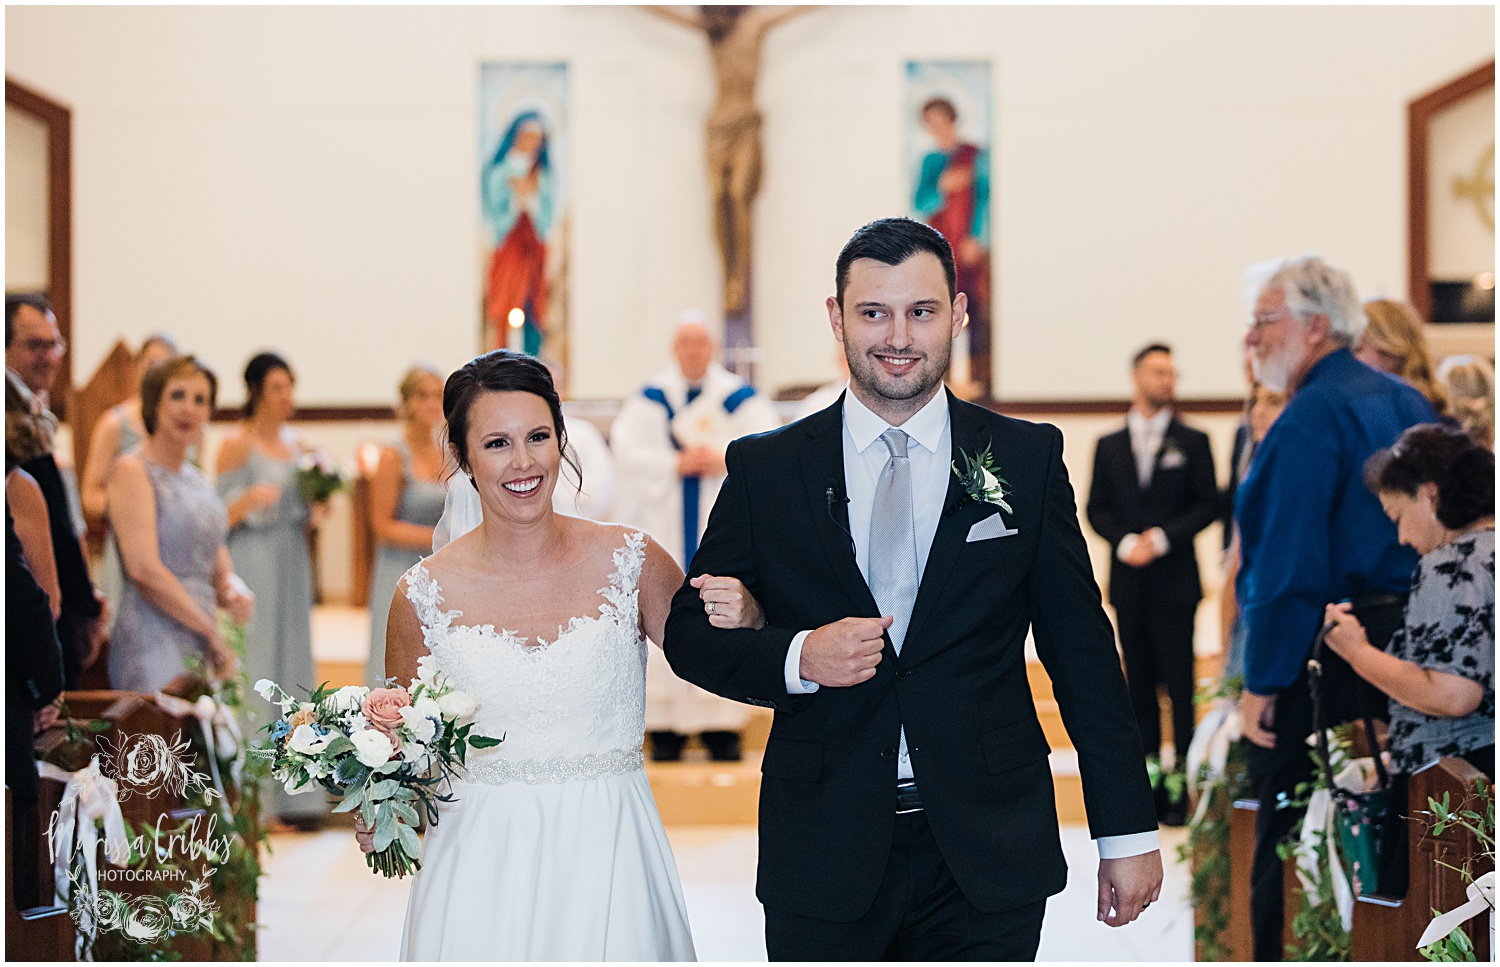 KELLY & MITCH MARRIED BLOG | MARISSA CRIBBS PHOTOGRAPHY | THE EVERLY EVENT SPACE_8845.jpg